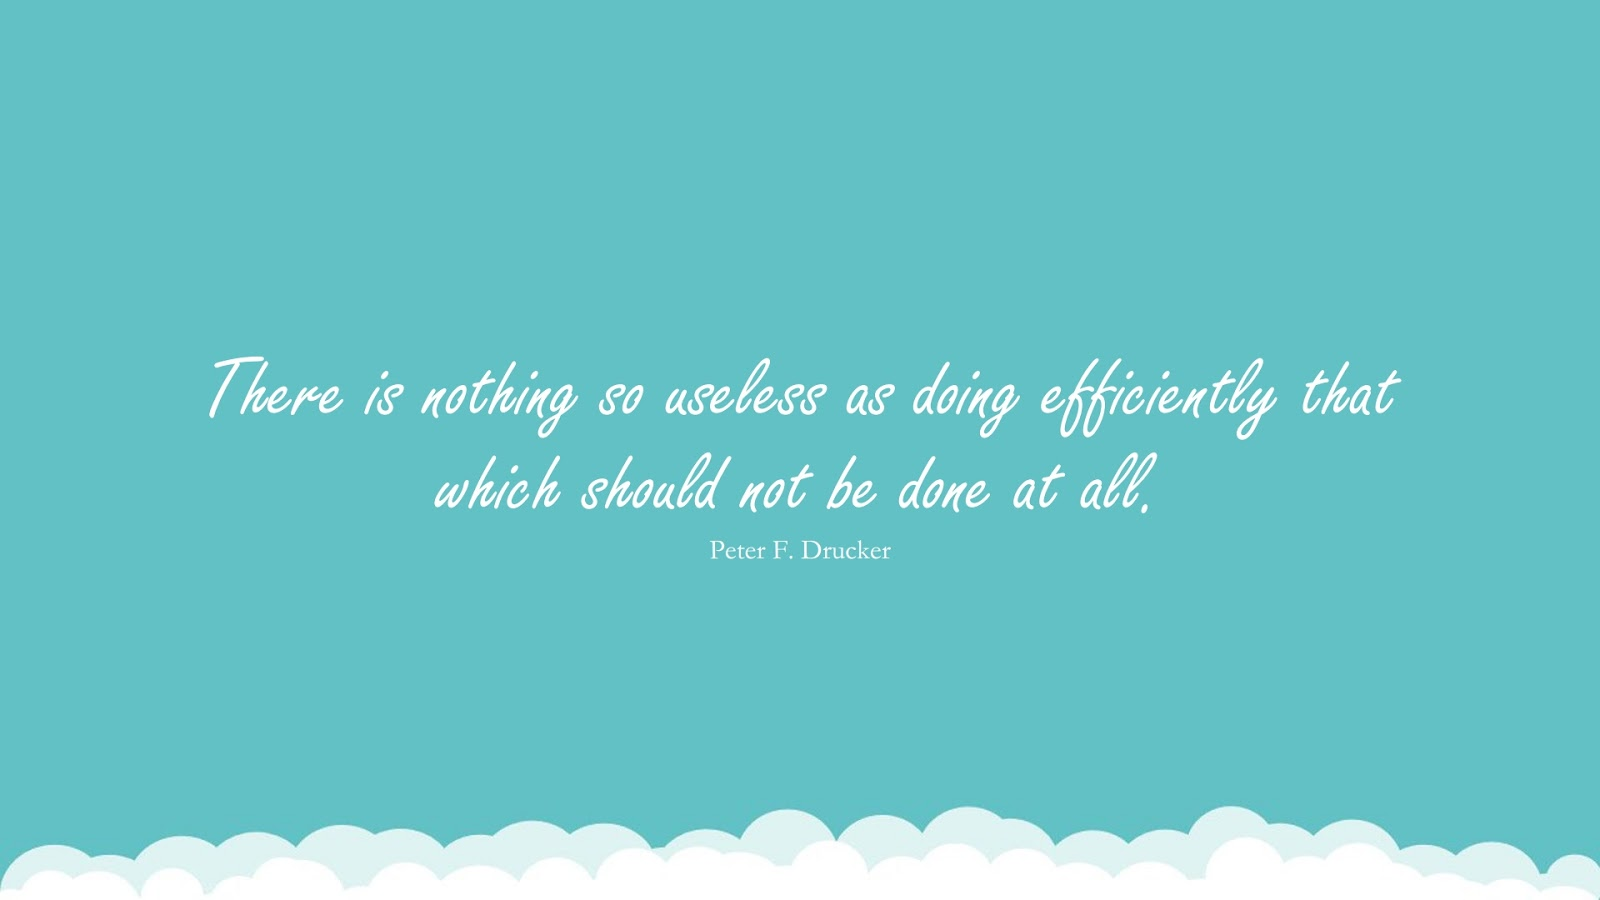 There is nothing so useless as doing efficiently that which should not be done at all. (Peter F. Drucker);  #SuccessQuotes